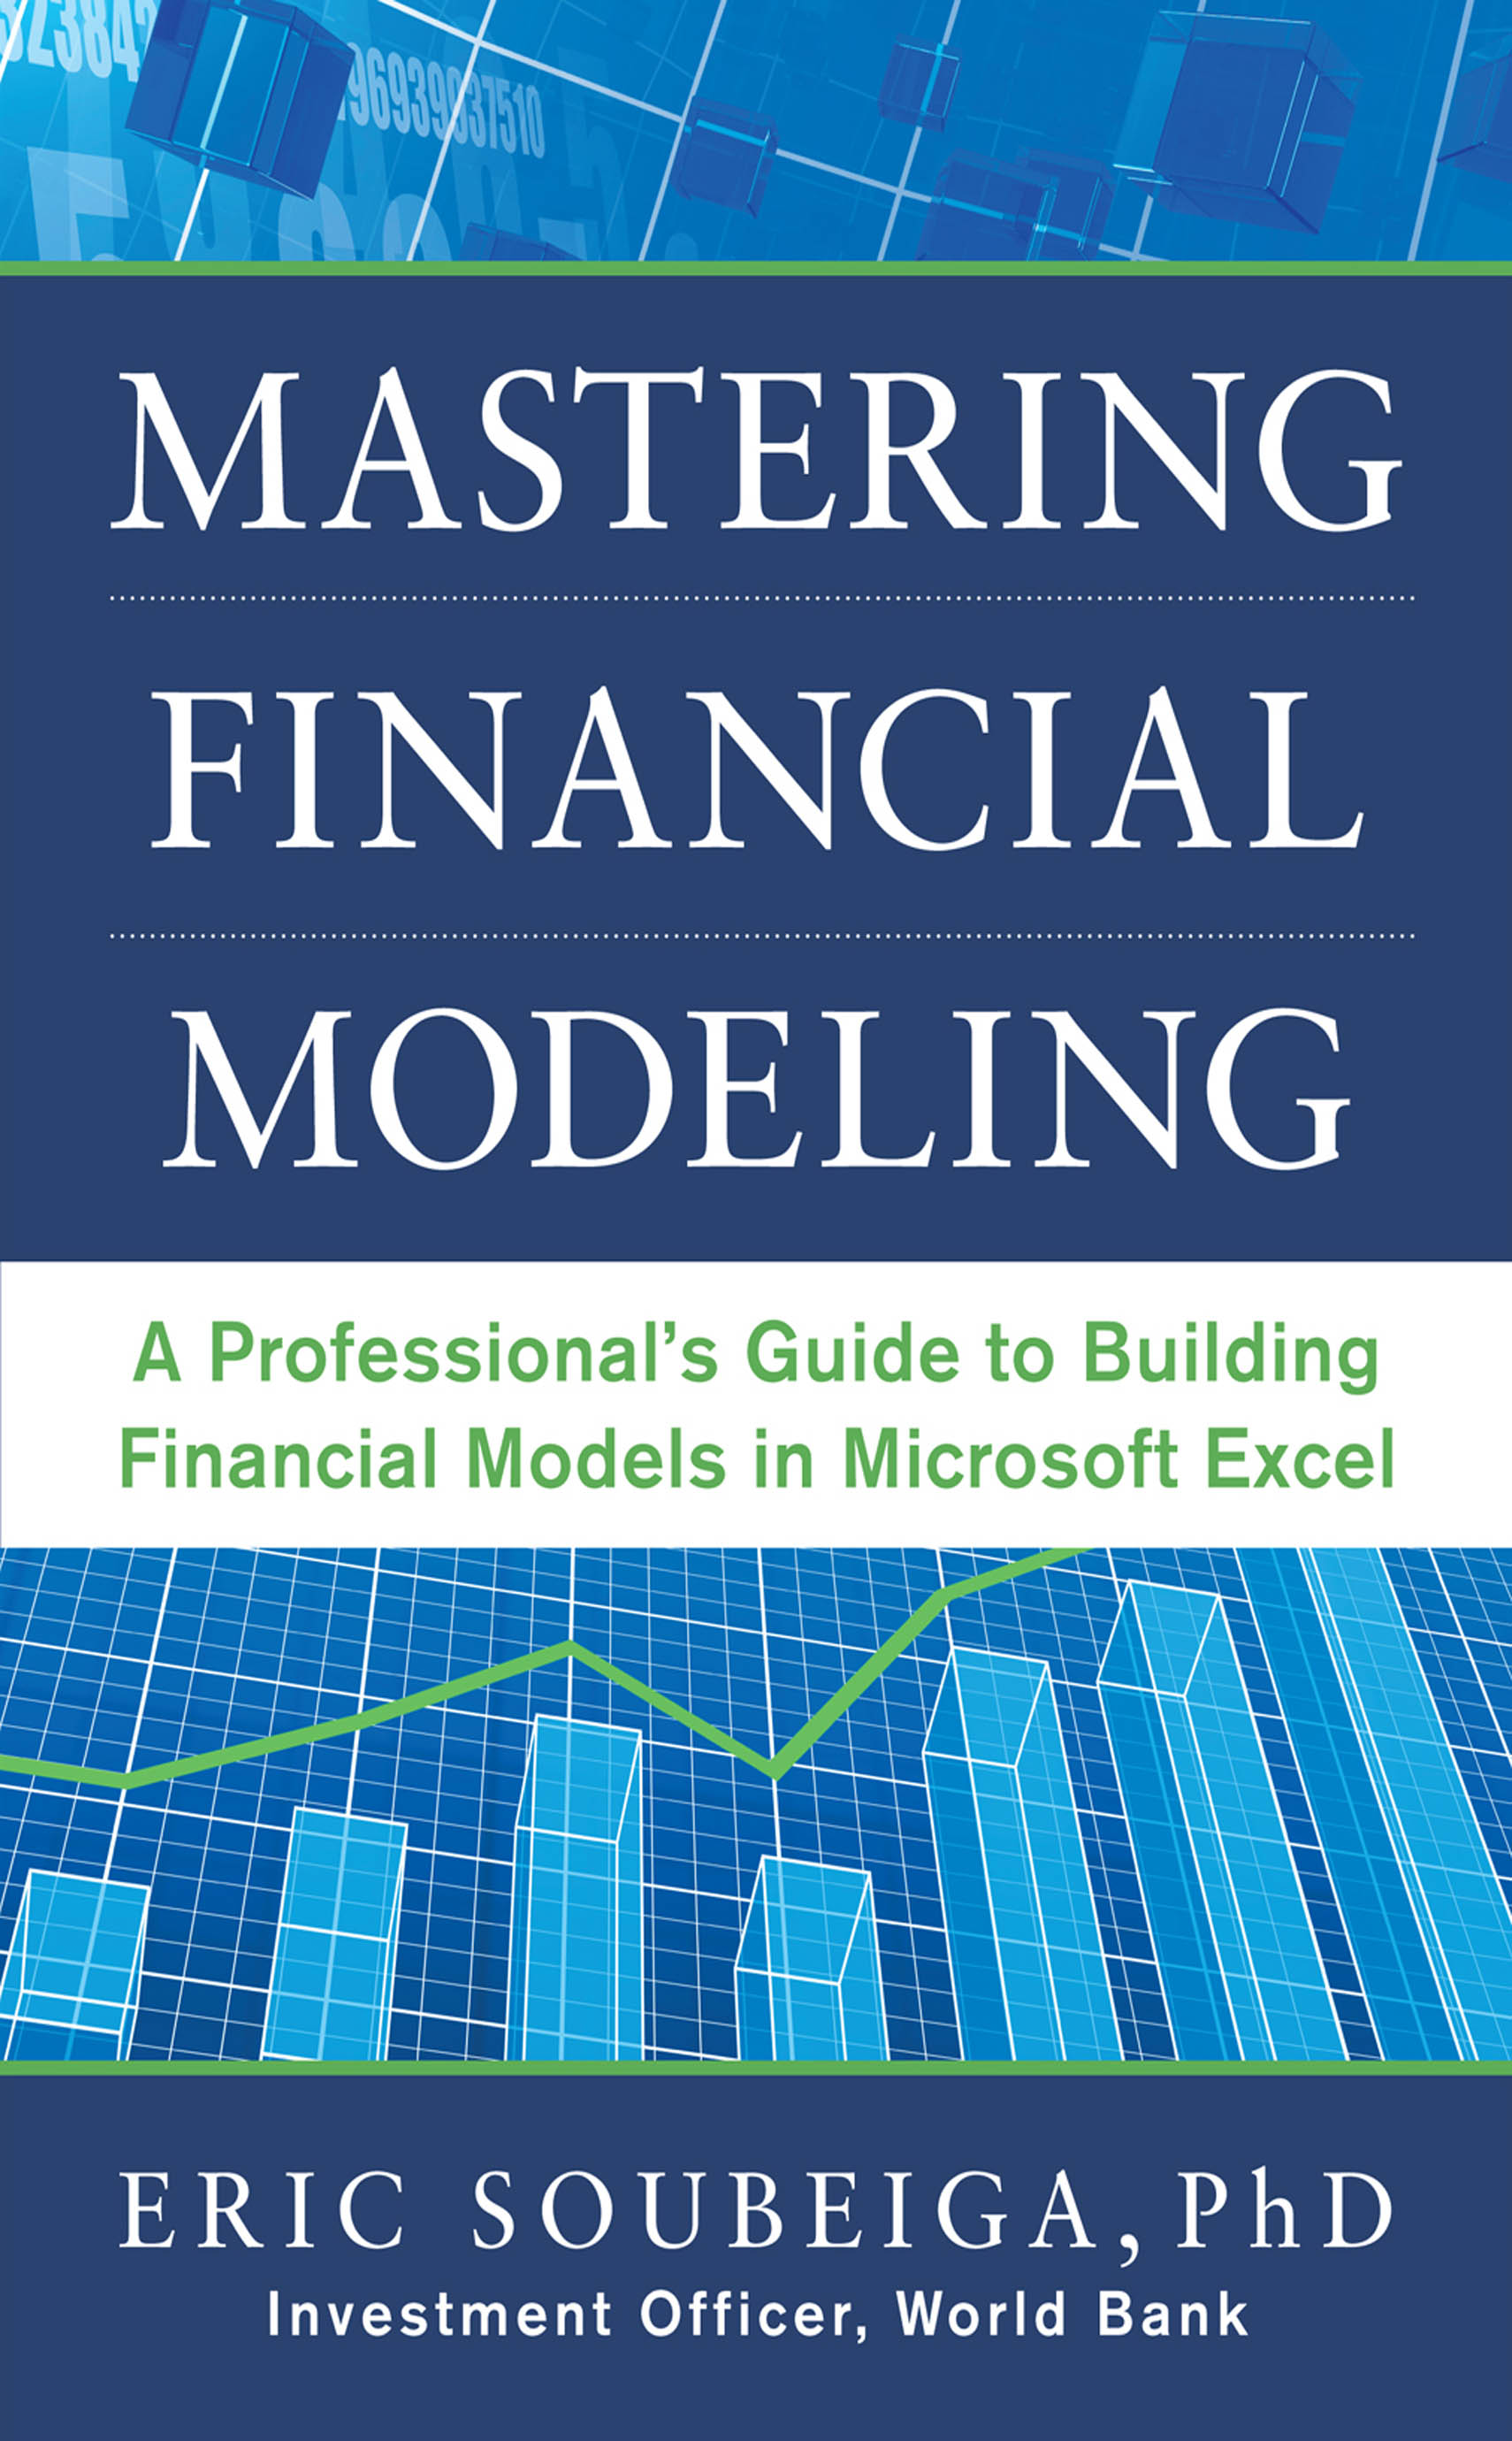 Download Ebook Mastering Financial Modeling: A Professional's Guide to Building Financial Models in Excel by Eric Soubeiga Pdf